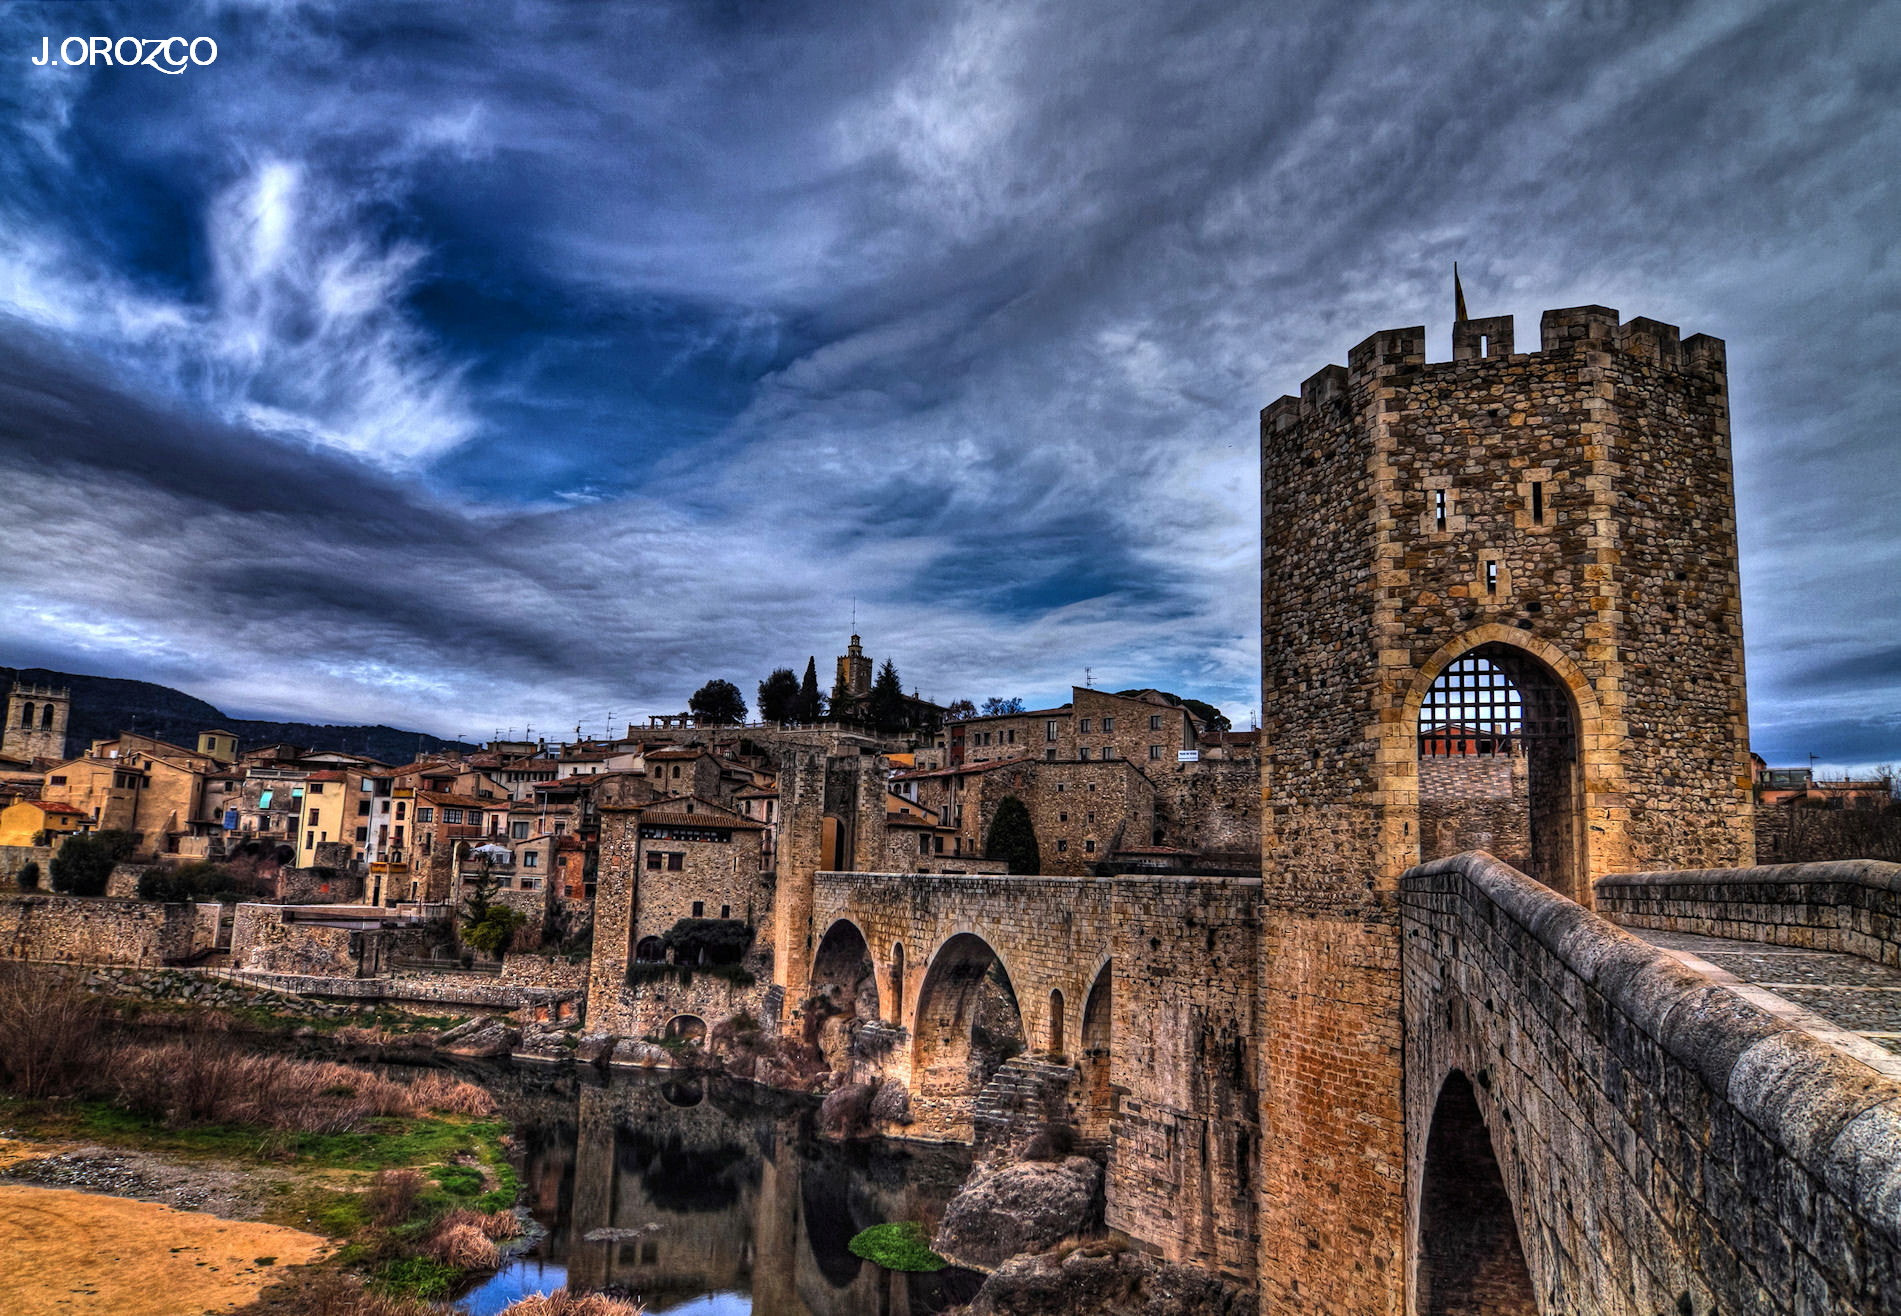 Photograph Besalú. by jose orozco on 500px